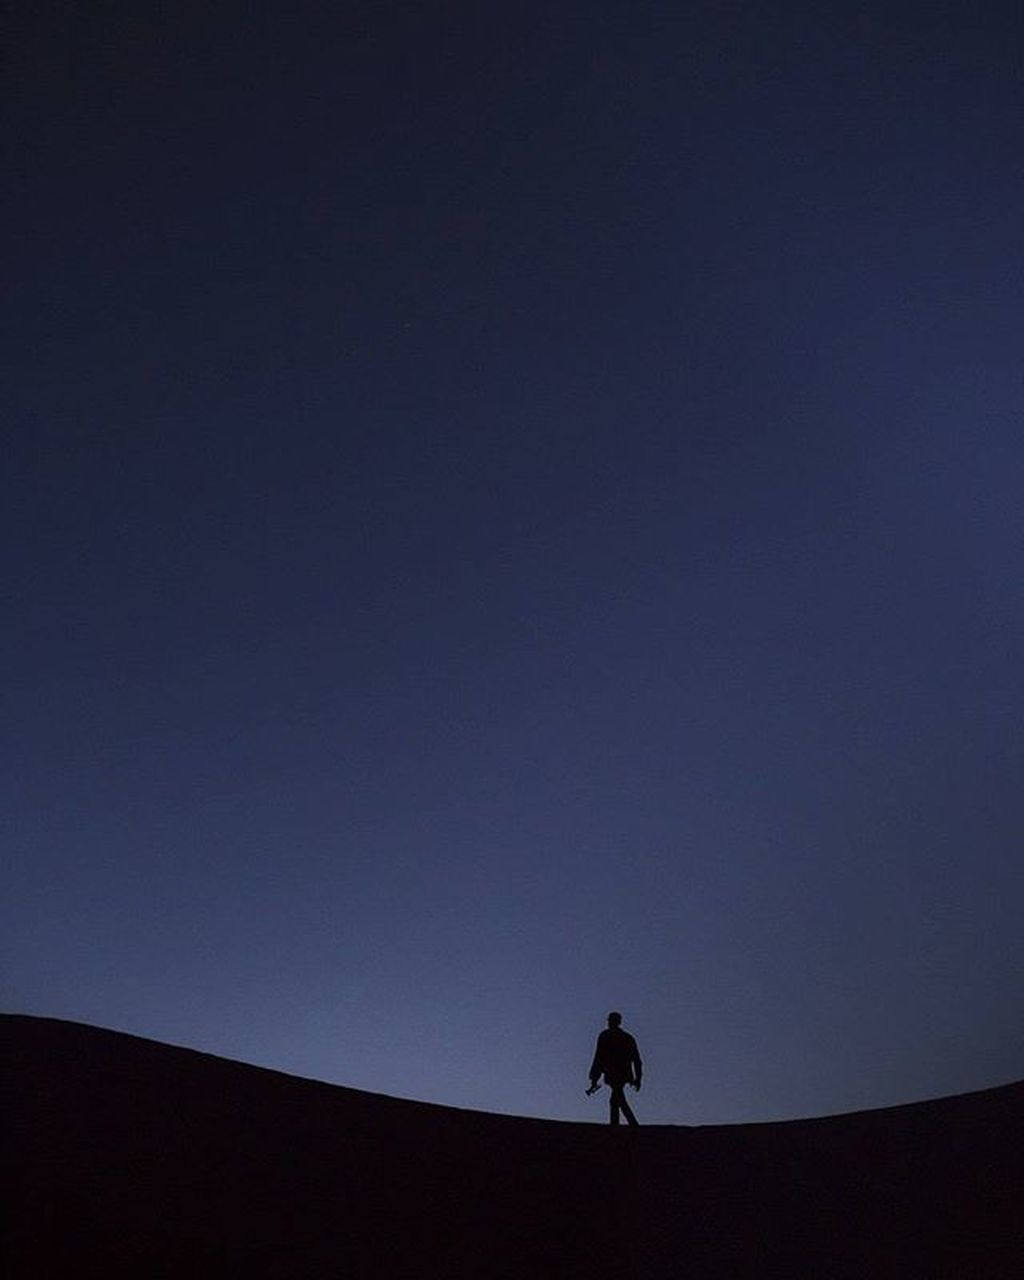 silhouette, one person, real people, copy space, lifestyles, full length, leisure activity, clear sky, low angle view, outdoors, nature, one man only, vacations, healthy lifestyle, men, adventure, desert, sky, only men, day, adults only, adult, people, beauty in nature, sand dune, astronomy